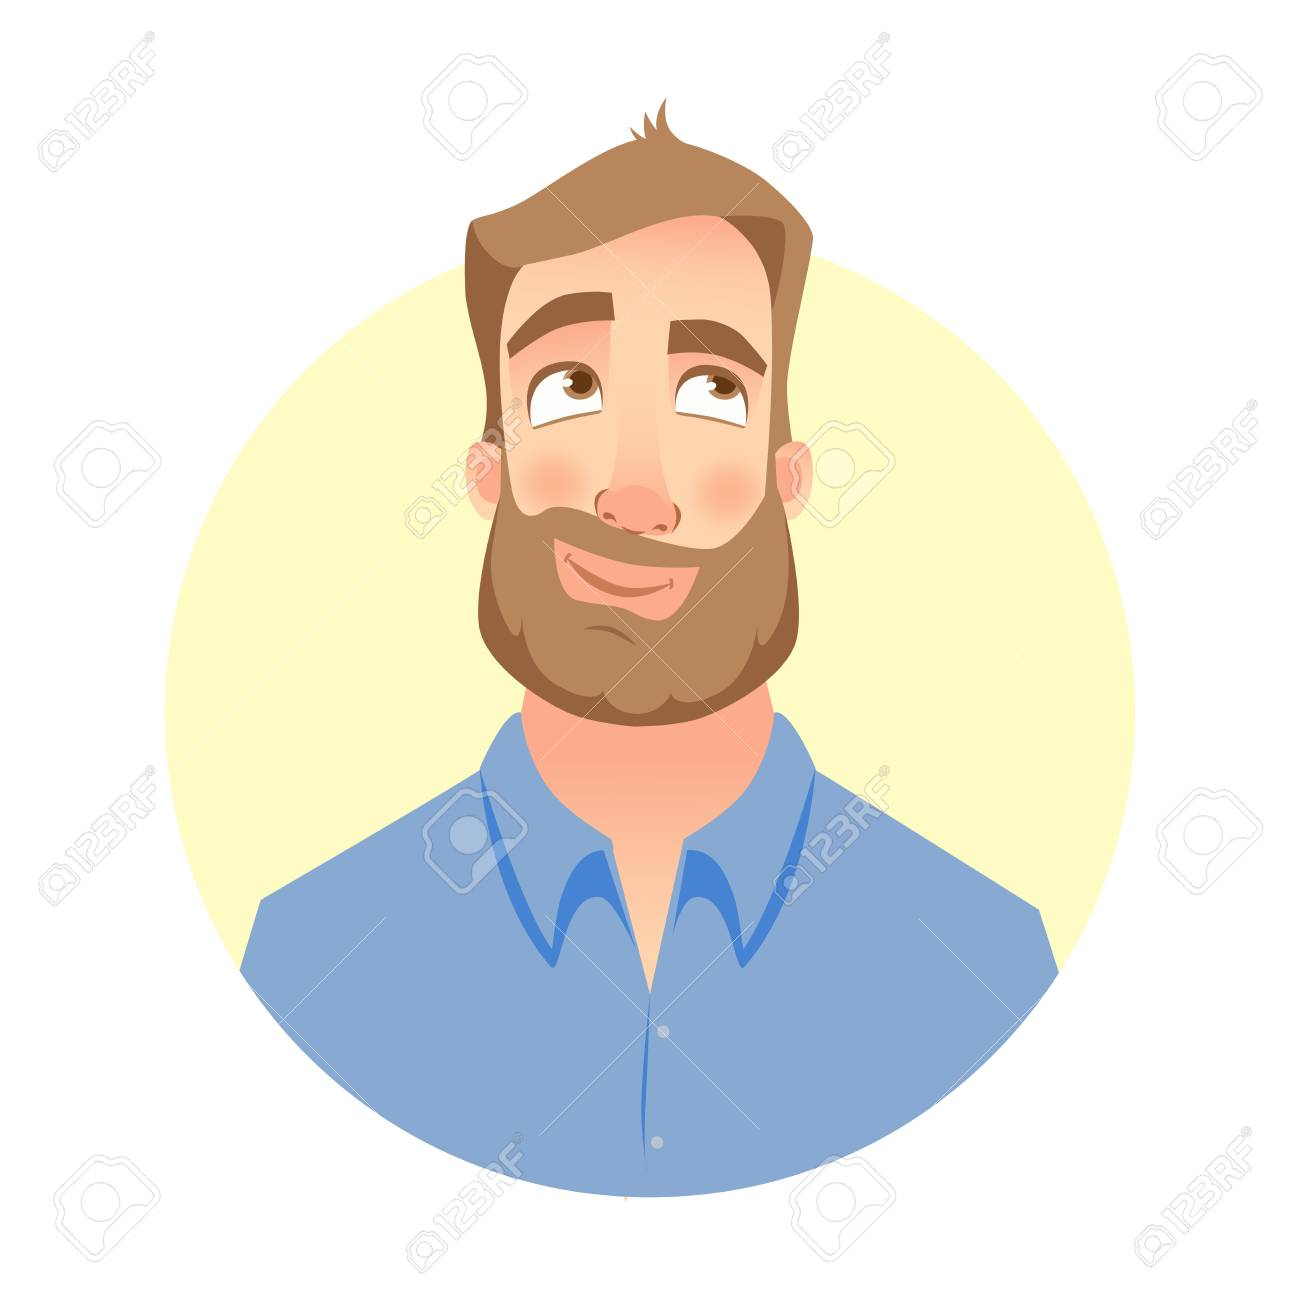 A Dreaming man. Face of man with beard - 92994109